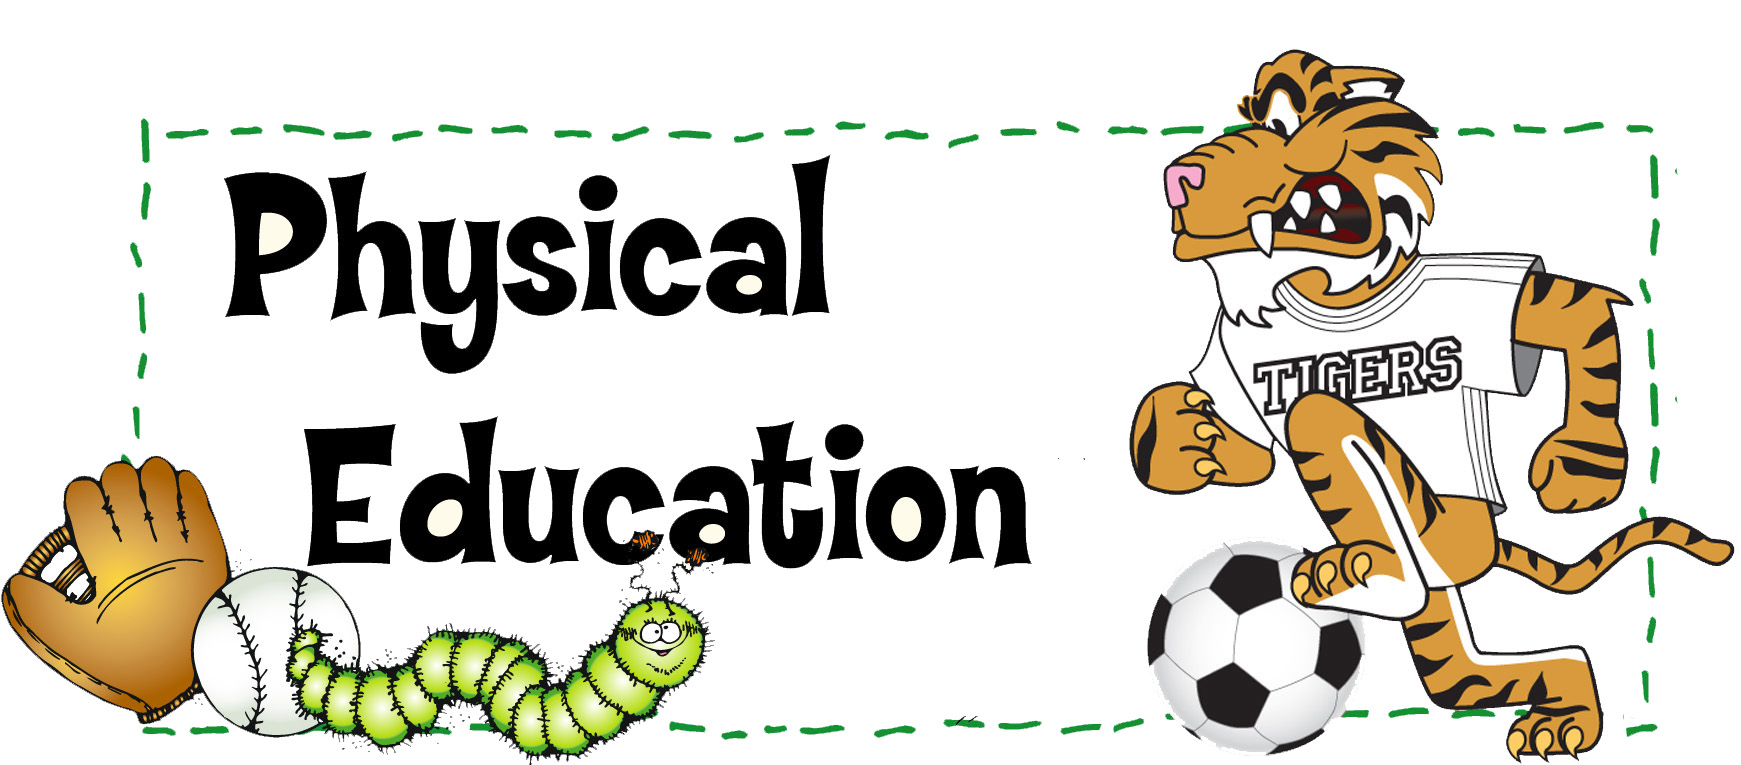 hight resolution of pe mrs sovich physical education clipart